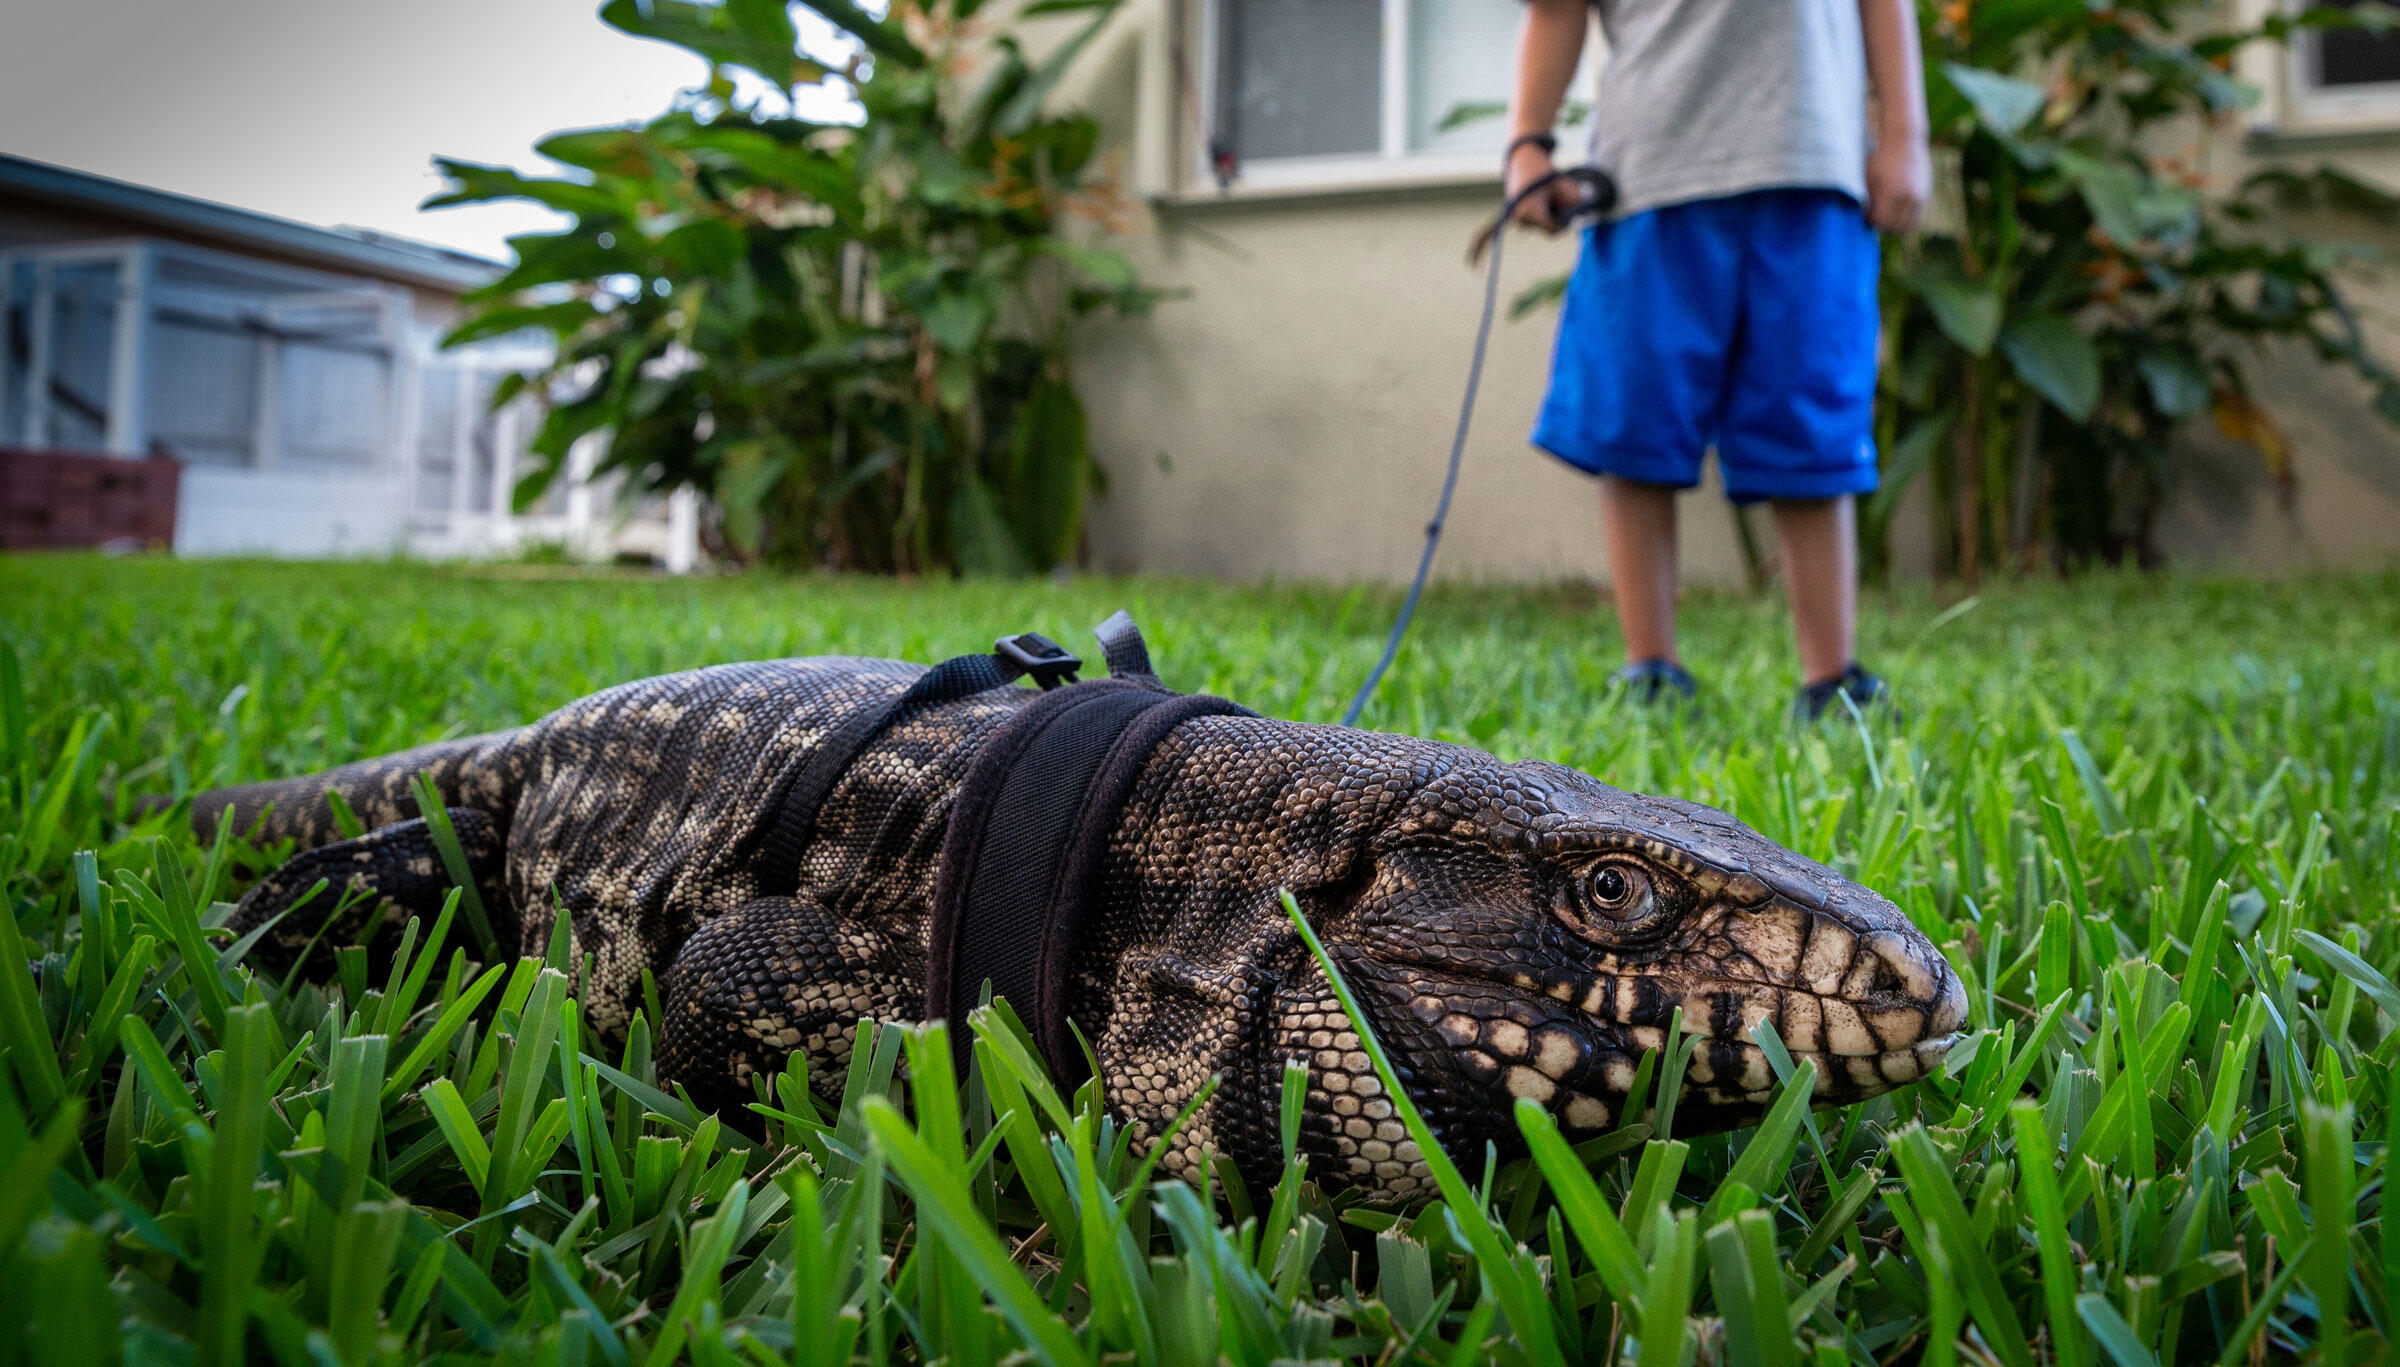 How To Catch A Lizard In Your Backyard - House of Things ...